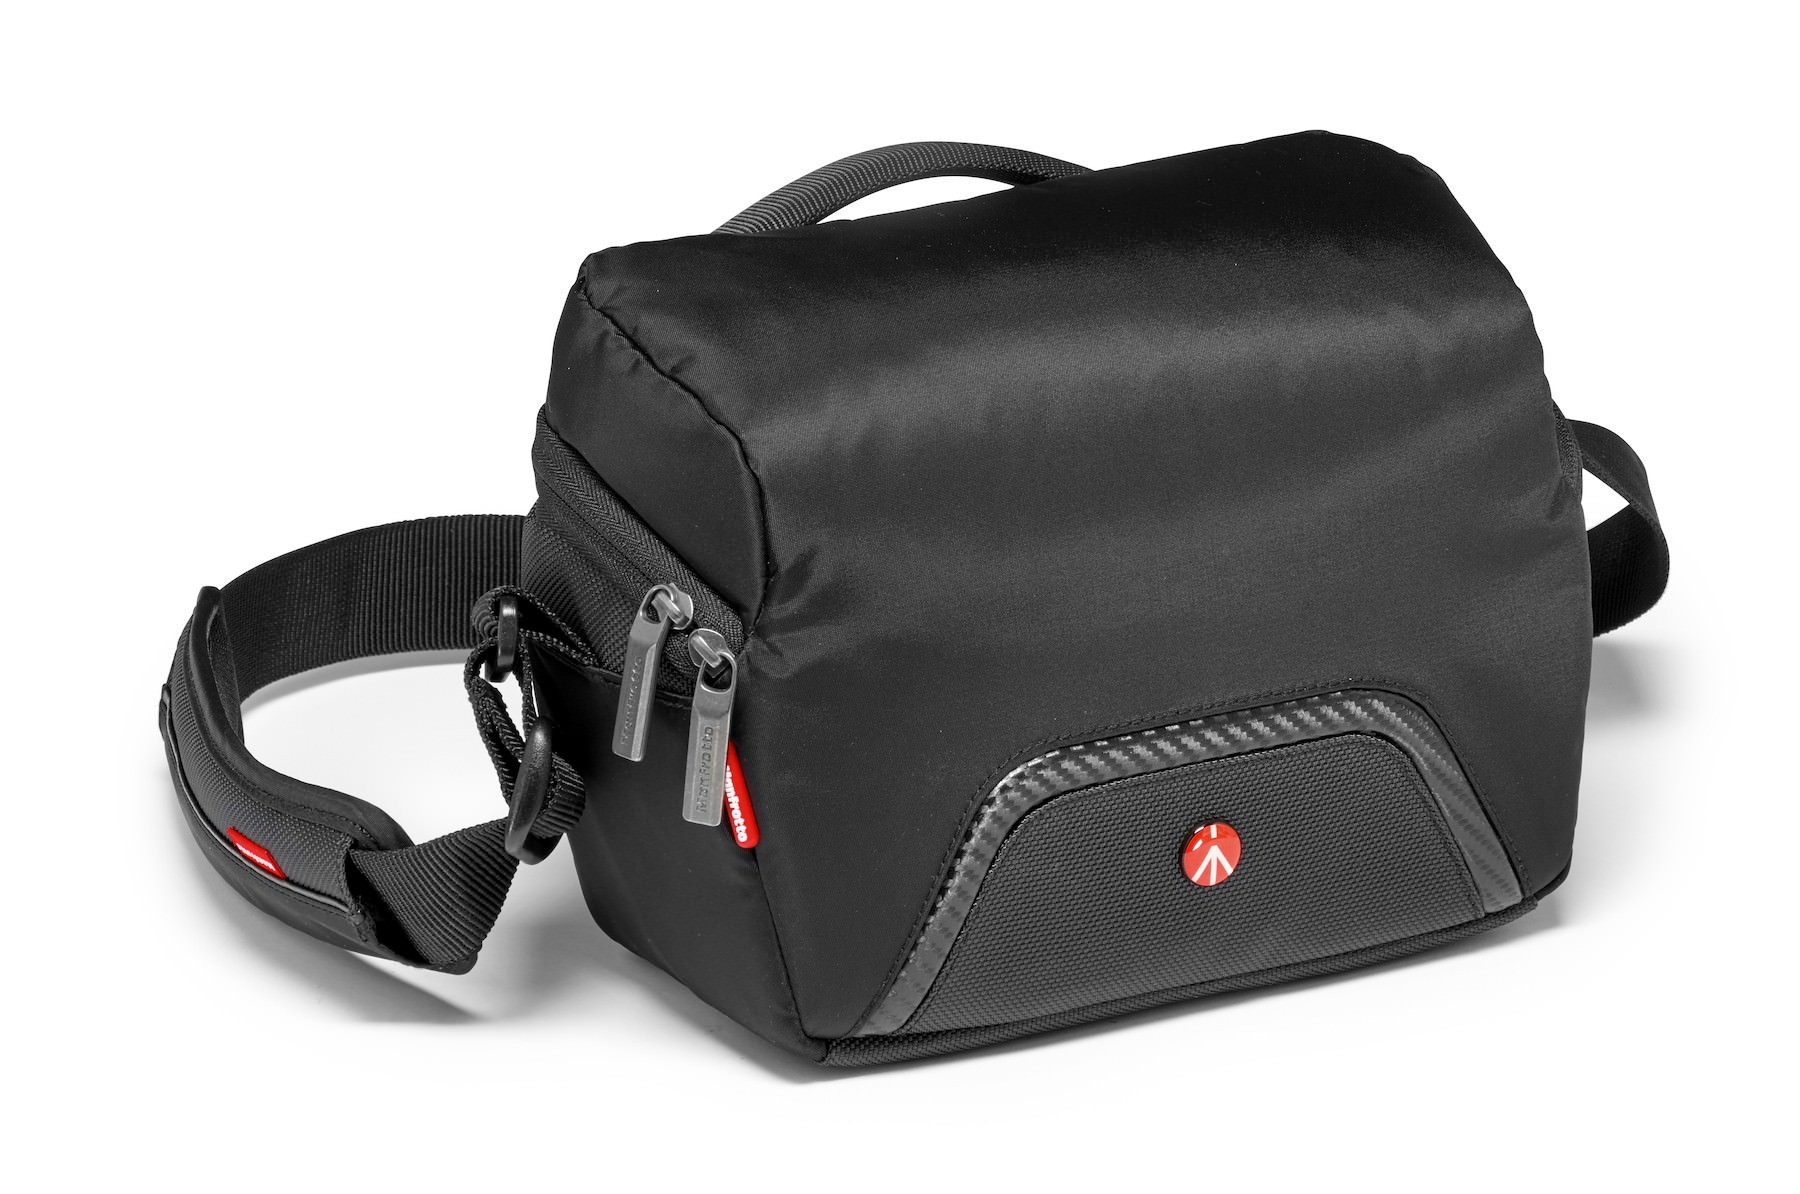 Manfrotto Borsa a spalla Advanced compact 1 per mirrorless